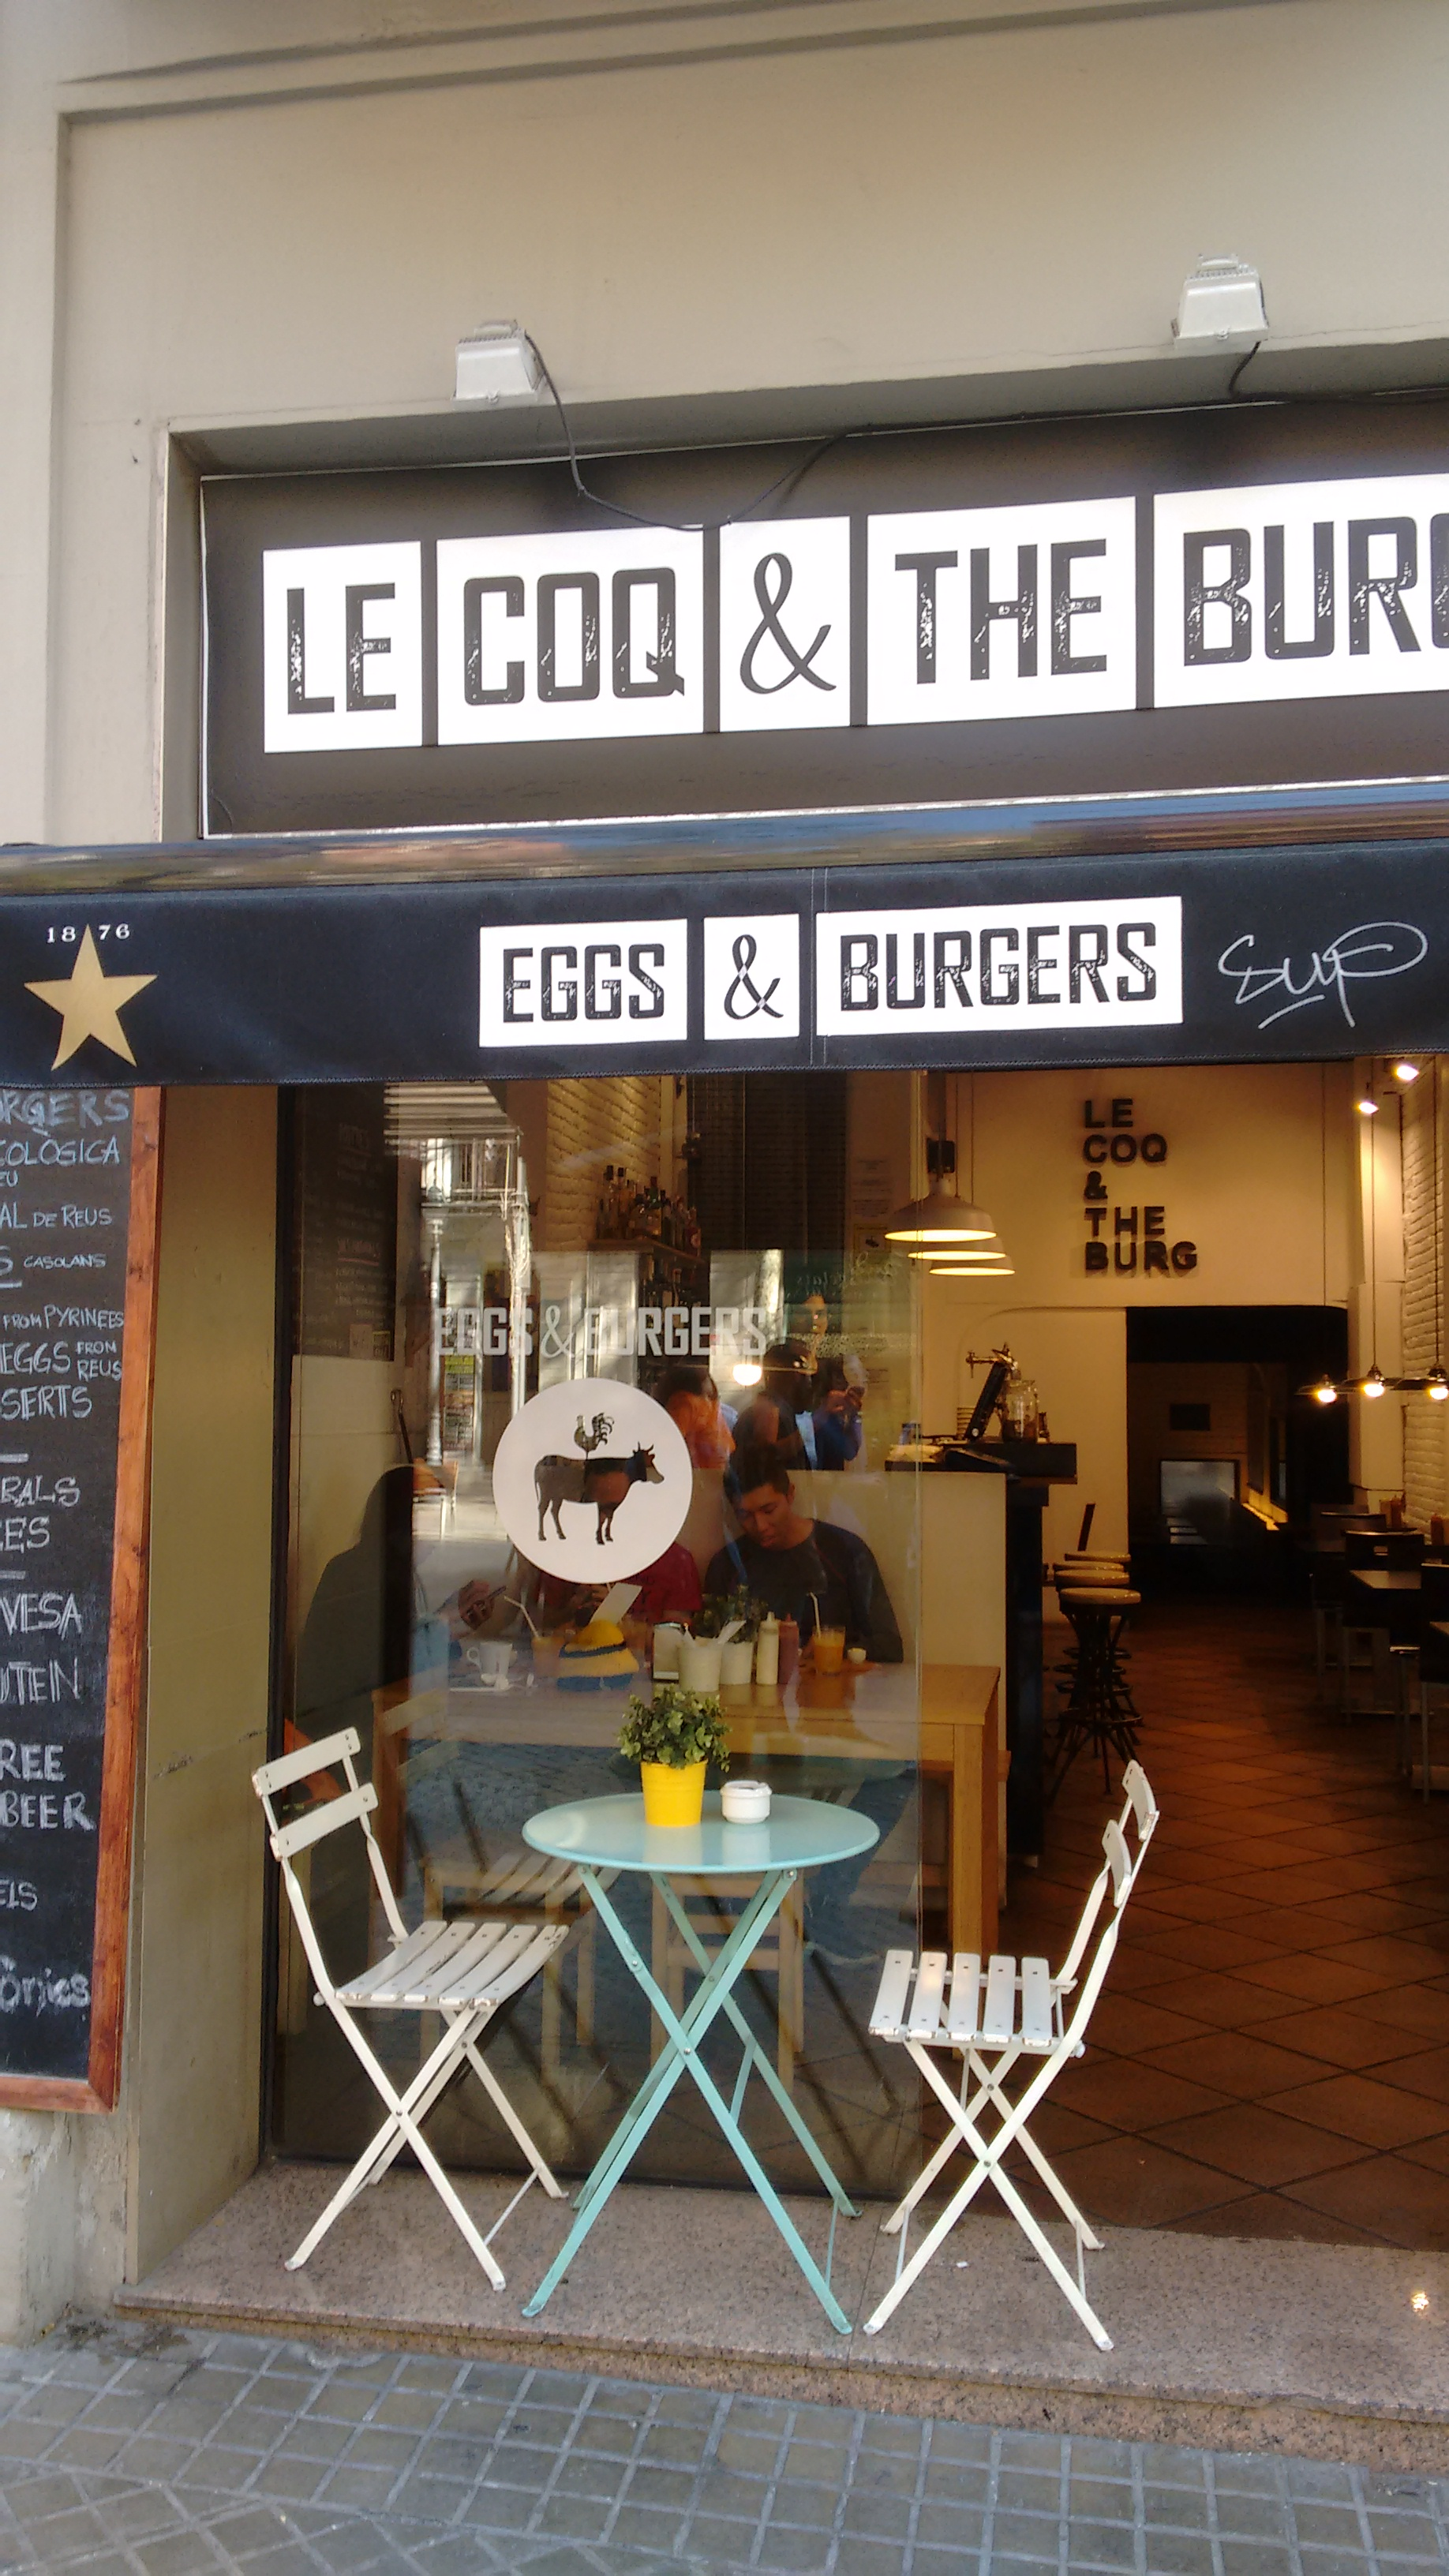 Le coq & the burg